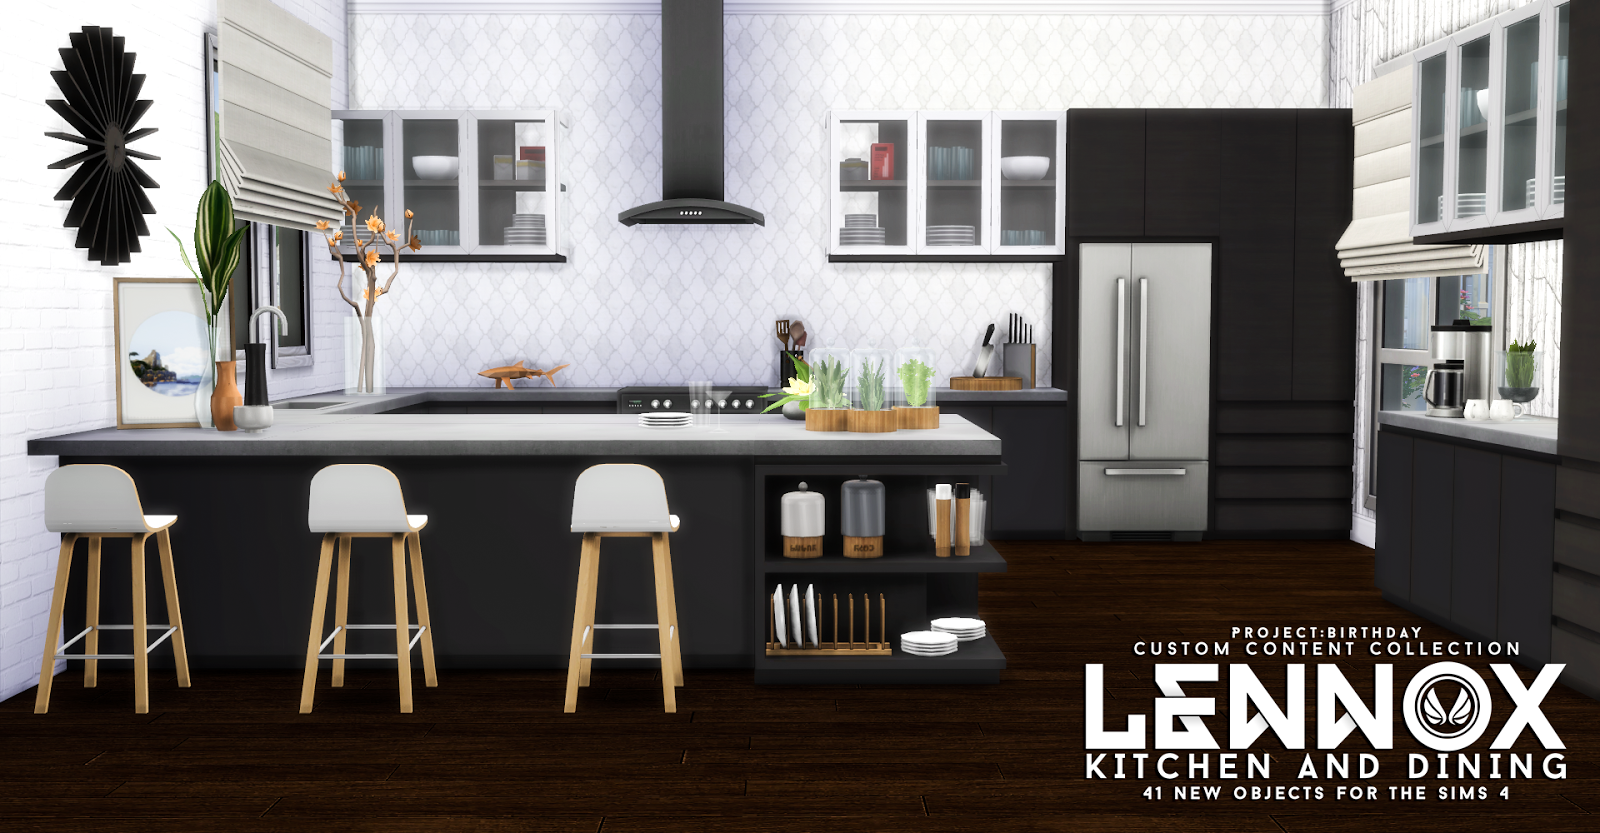 Updated - Lennox Kitchen And Dining Set by Peacemaker ic